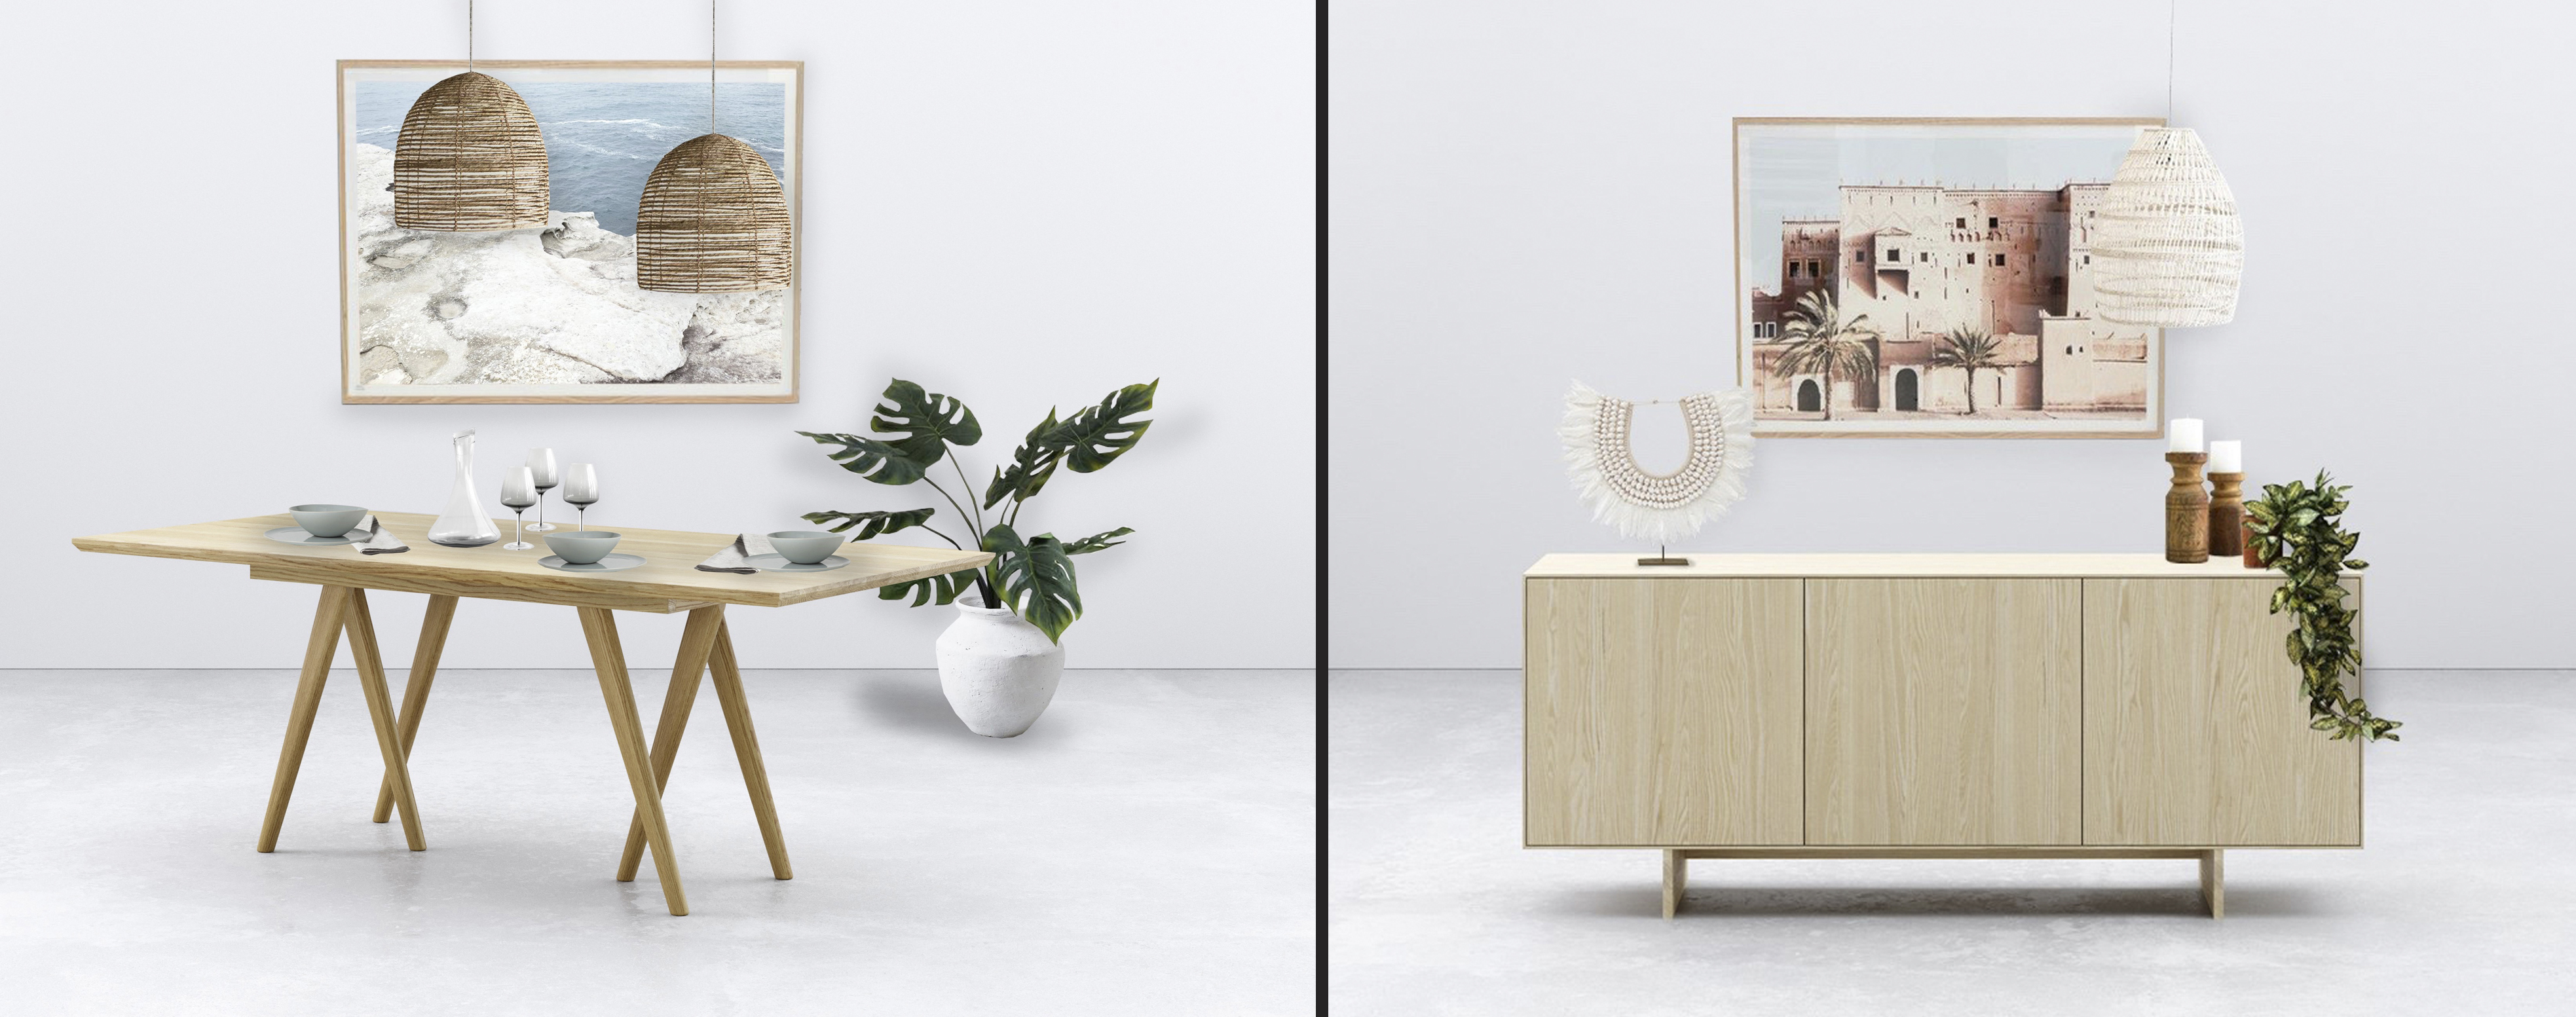 Left: Oska dining table – comes in ash or oak, in a variety of finishes. Right: Functional and stylish, the Apt three-door sideboard is inspired by Scandinavia design. Photos: © Woodwrights